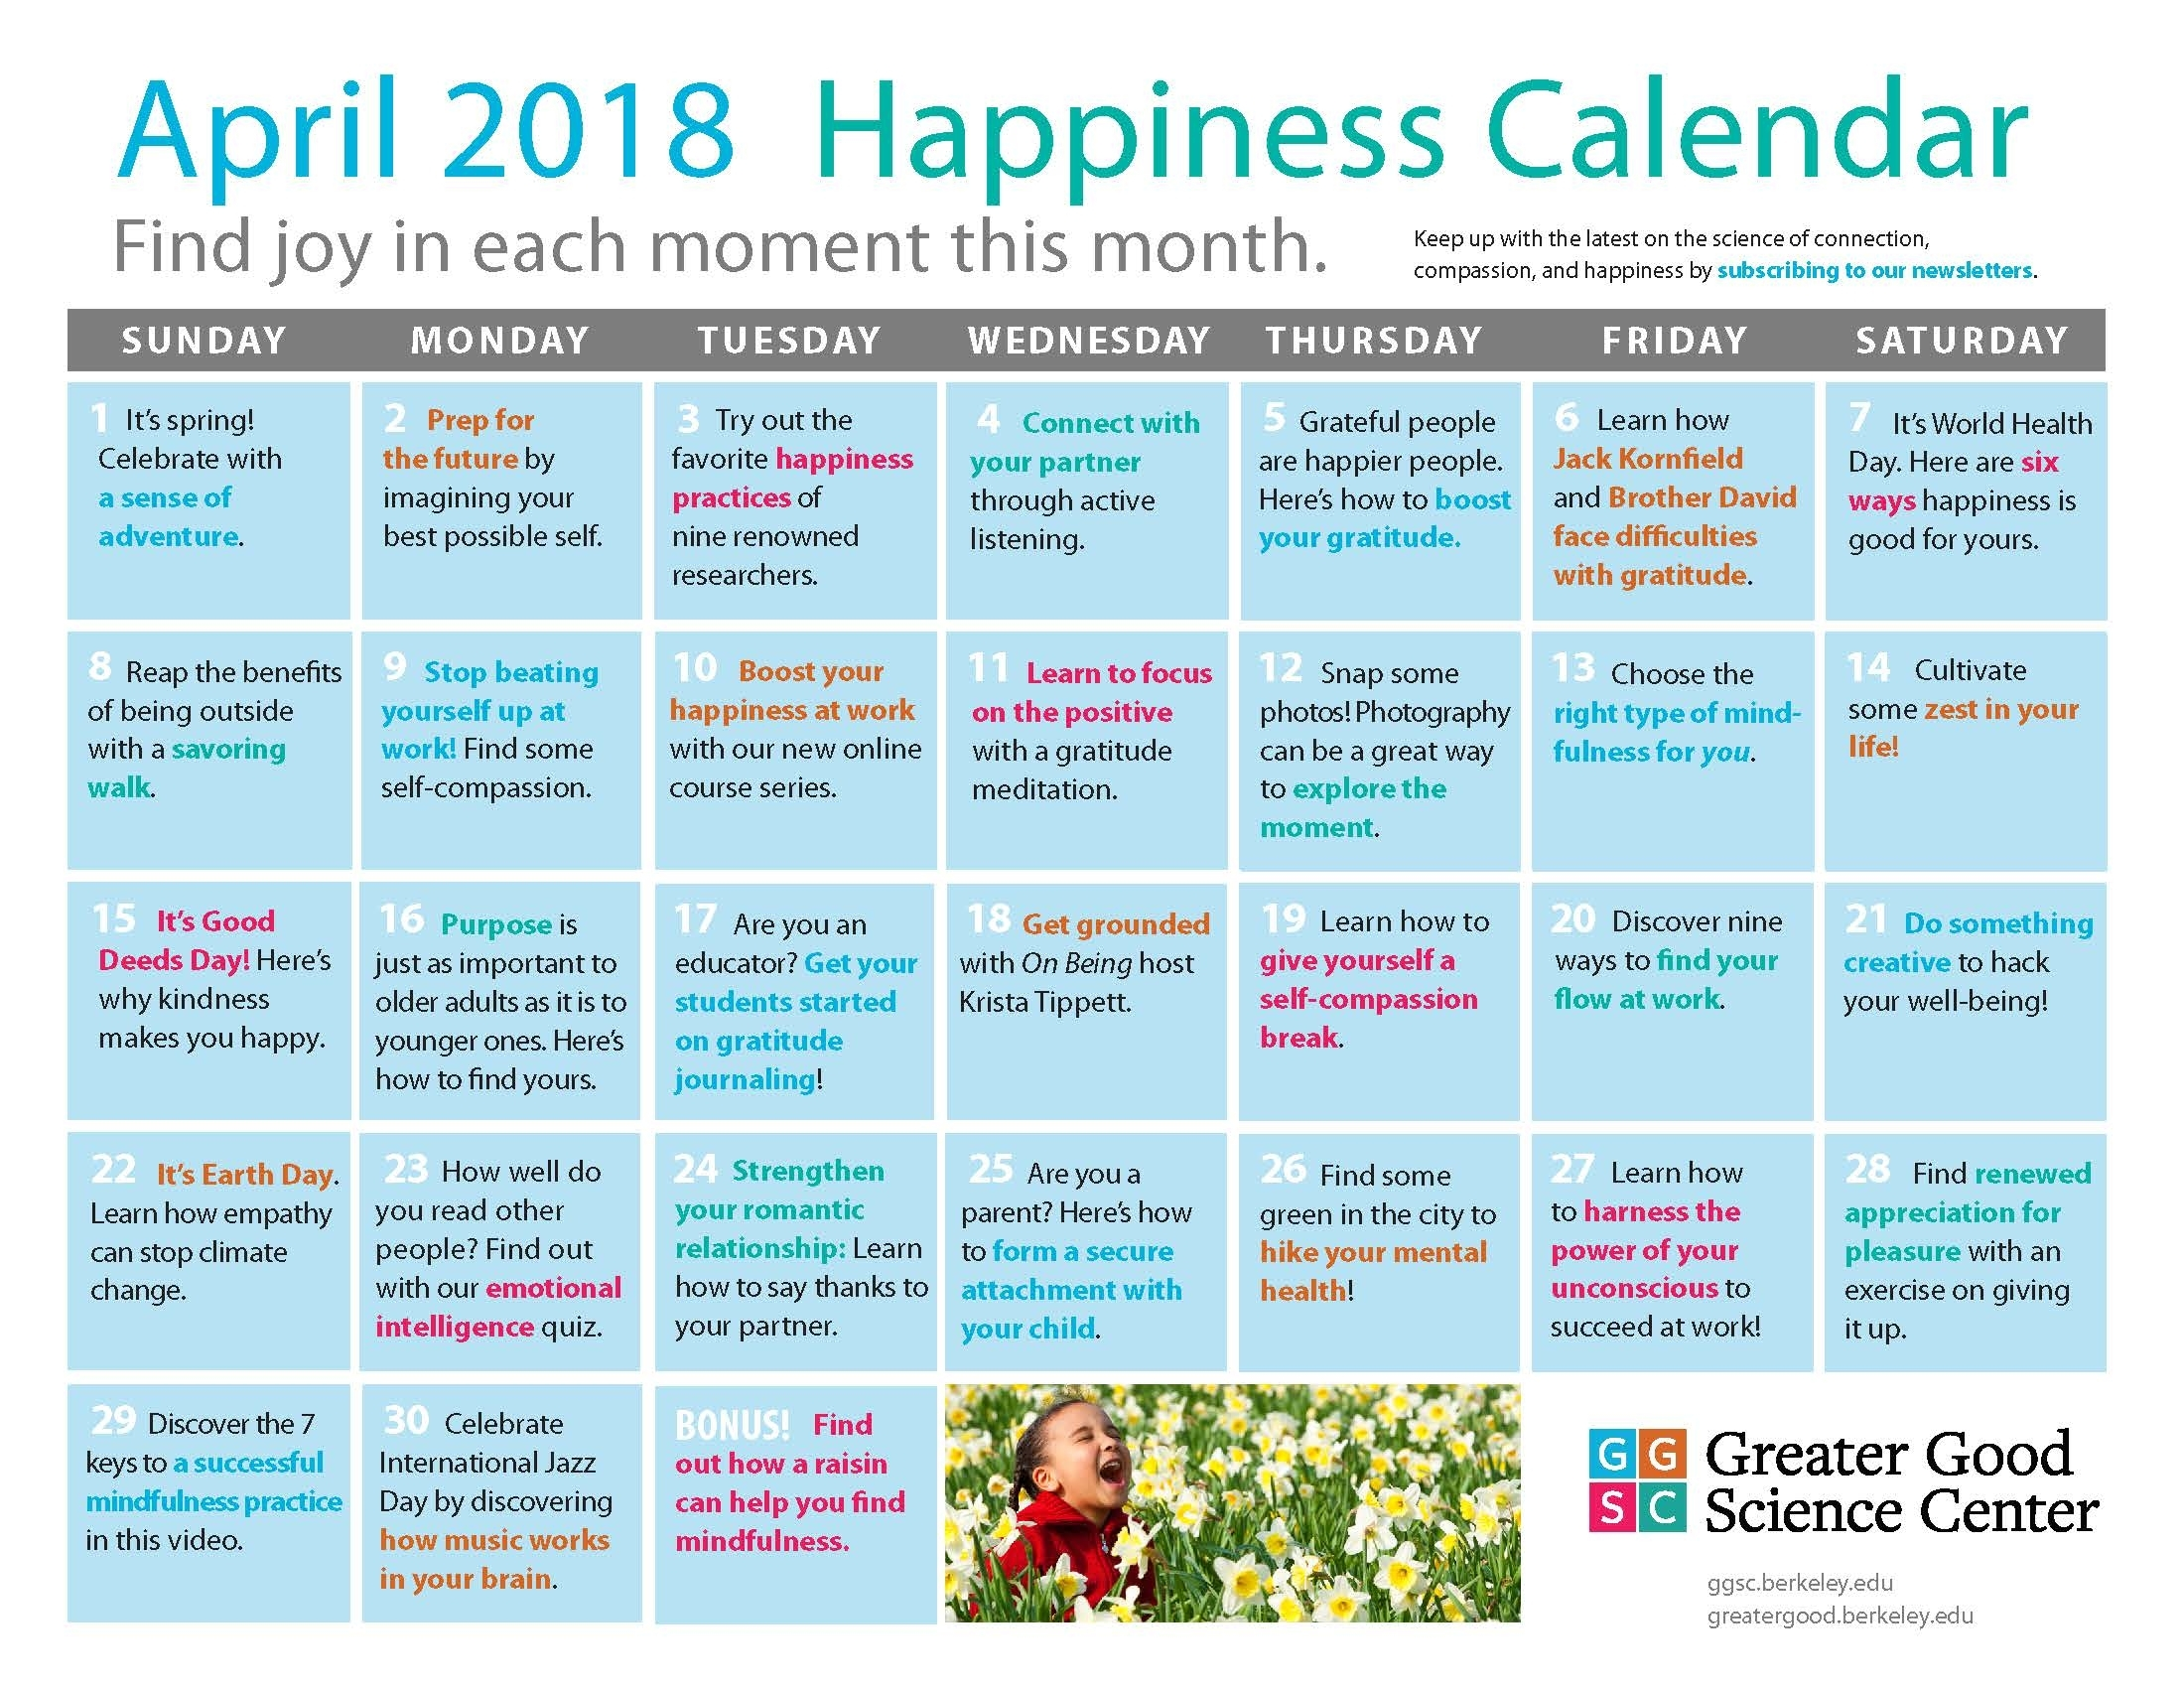 Our April Happiness Calendar Is Here! | Ggsc intended for Uc Berkeely 2020 Spring Semester Months